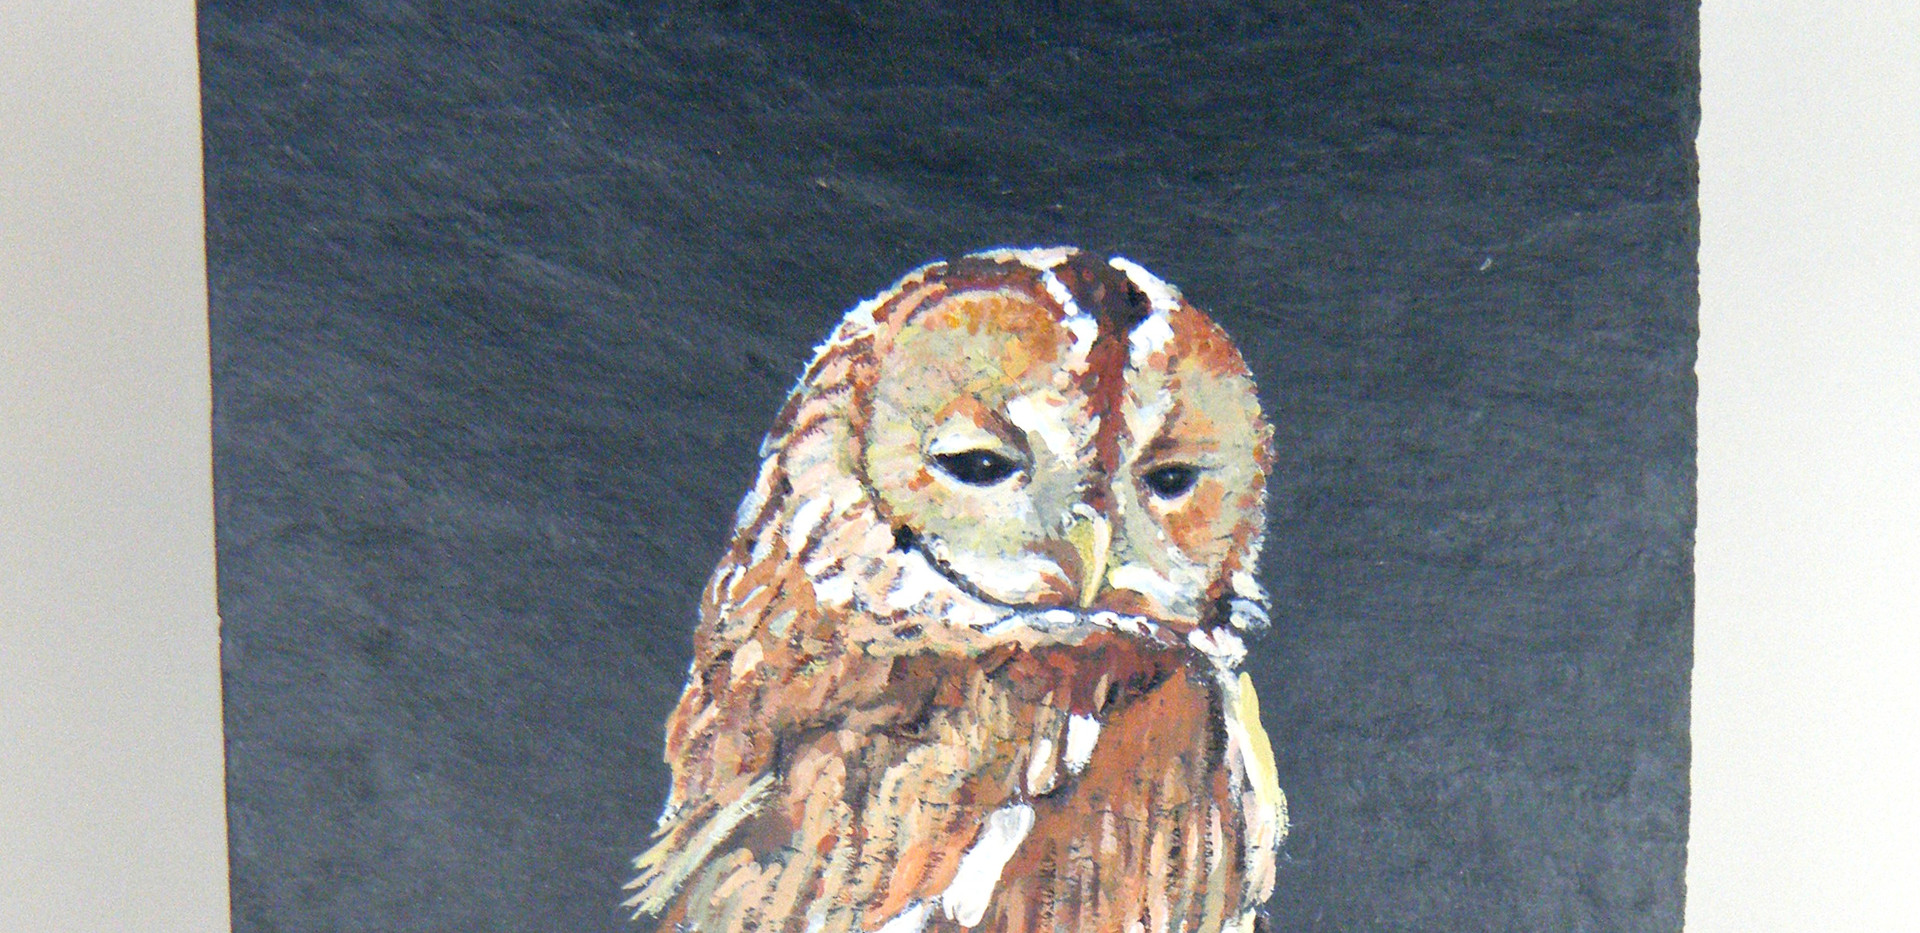 Large picture of Tawny owl